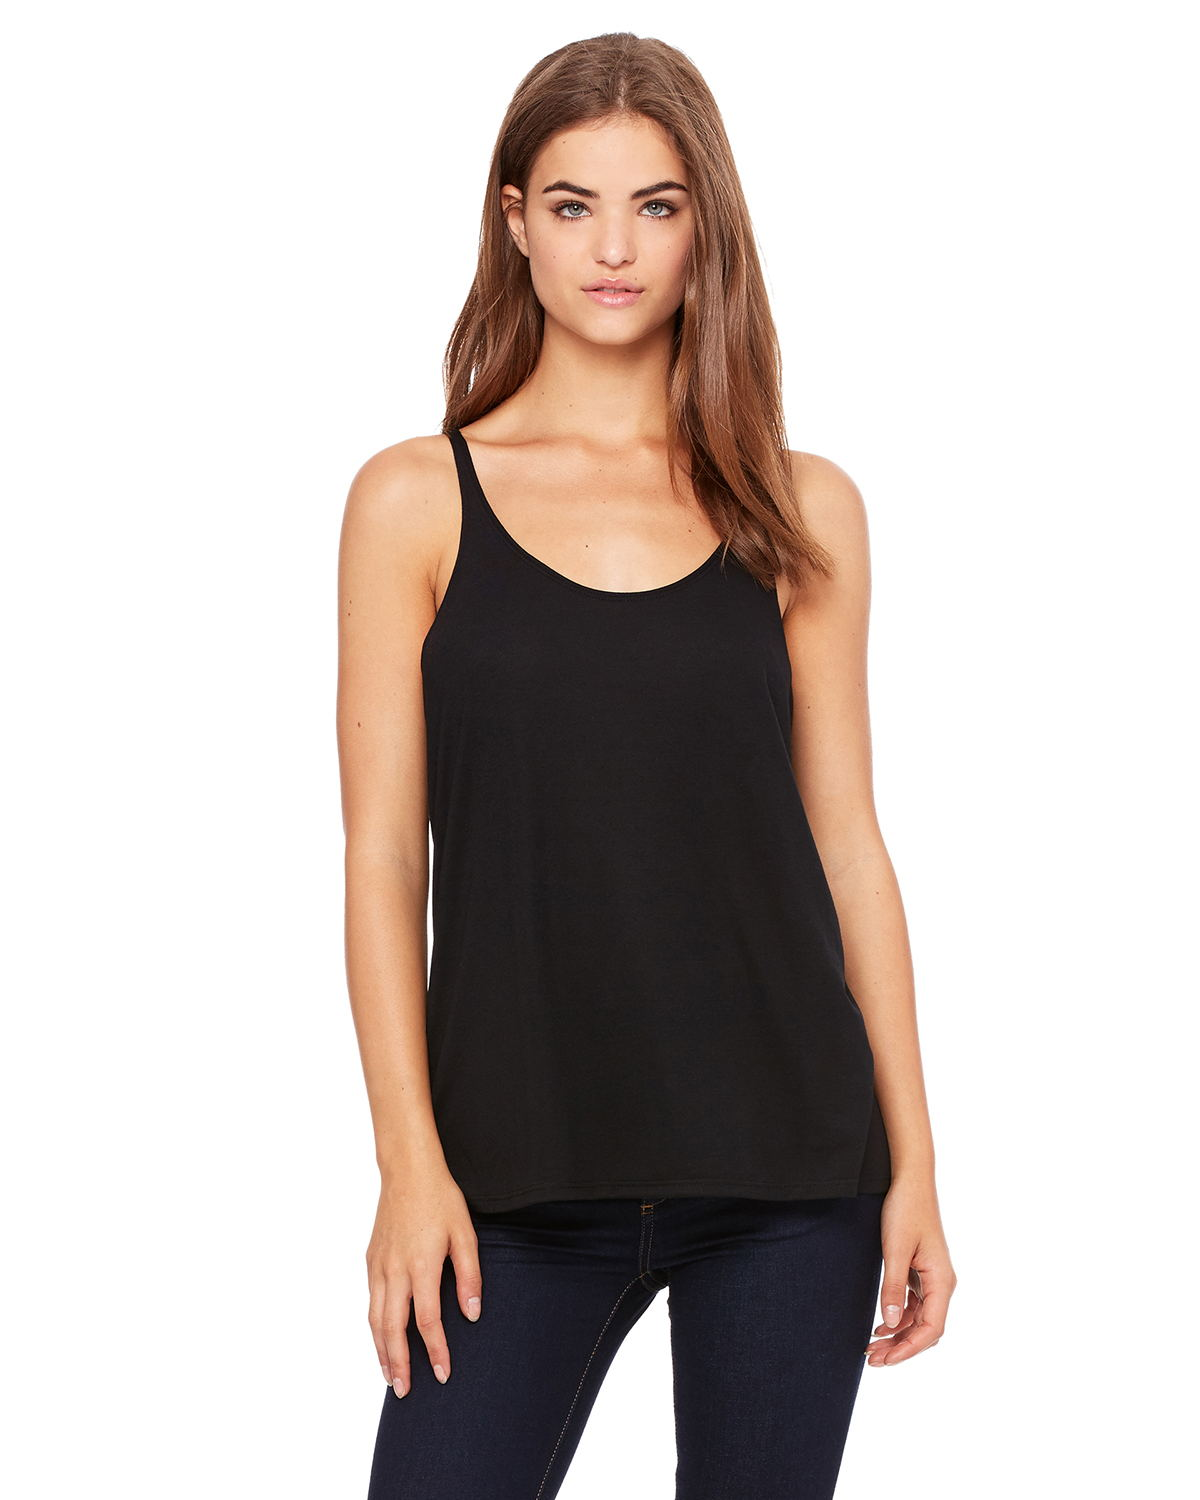 Bella+Canvas 8838 - Ladies' Slouchy Tank